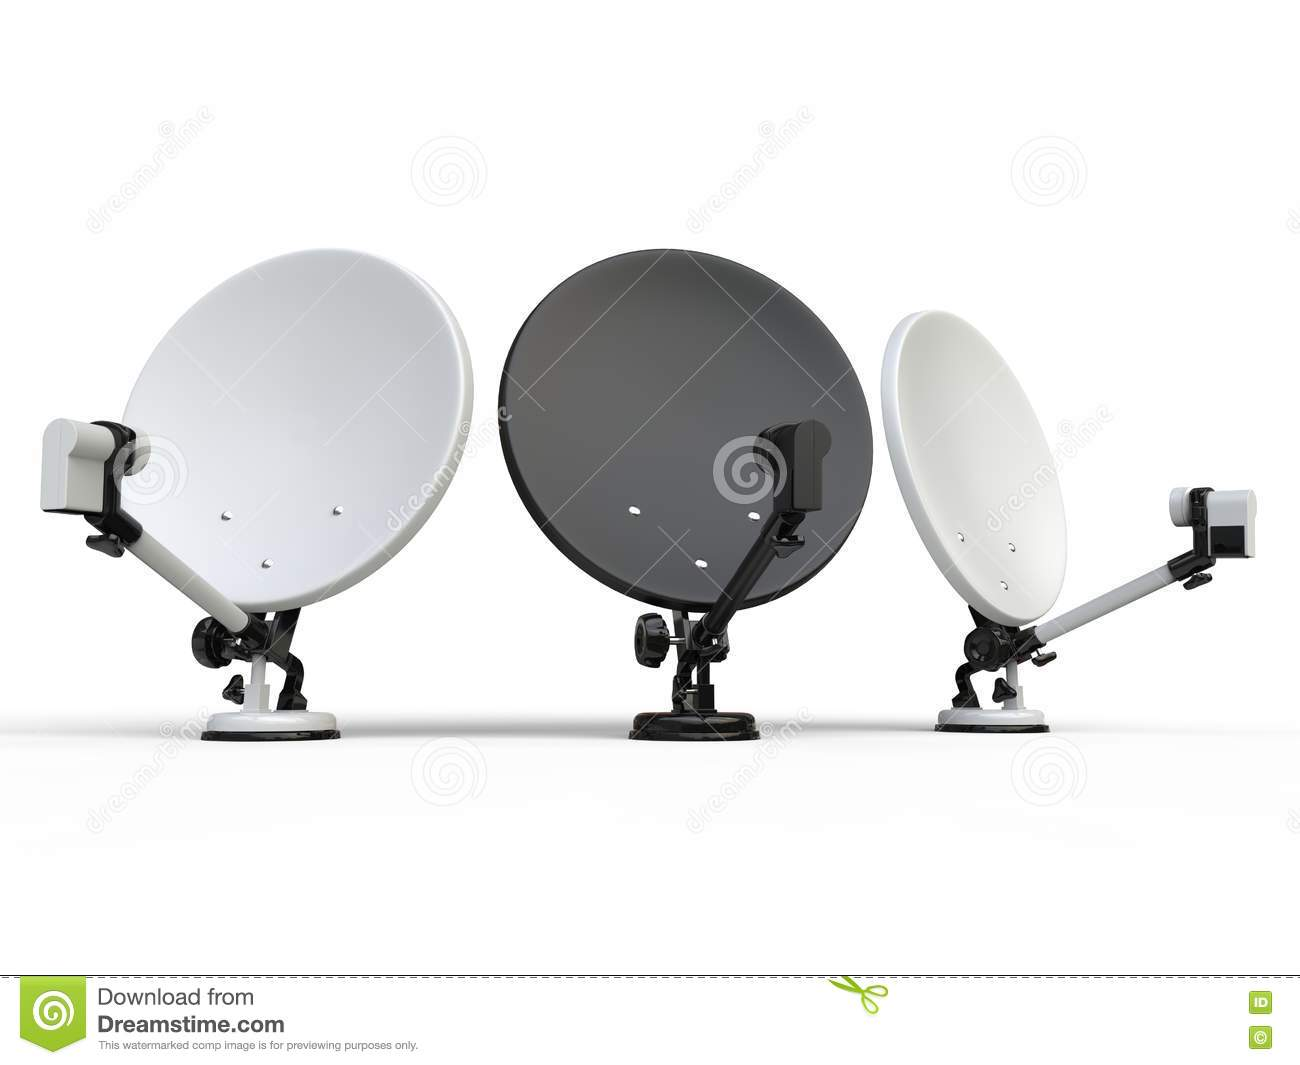 Dishes Cartoons Illustrations amp Vector Stock Images  : three black white tv satellite dishes isolated background 77882763 from cartoondealer.com size 1300 x 1065 jpeg 52kB